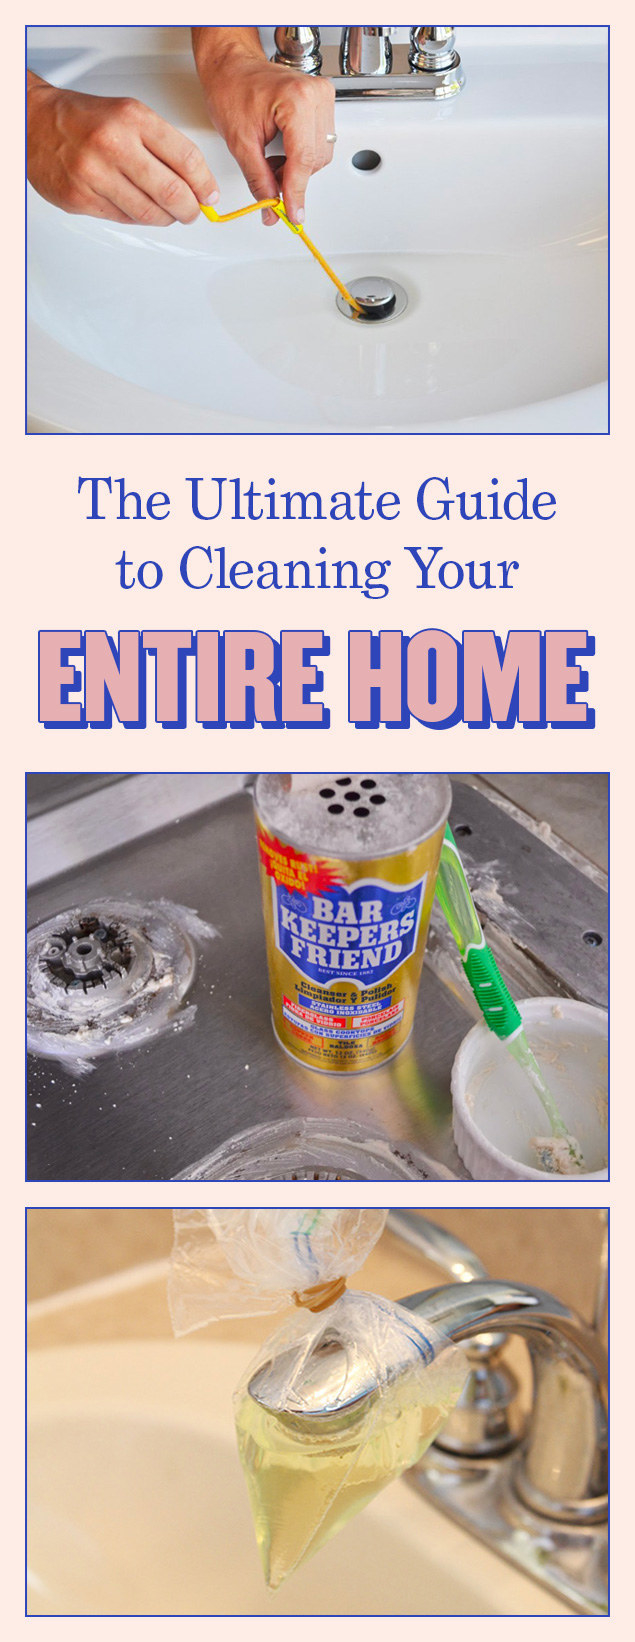 This cleaning guide covers the kitchen, bathrooms, and bedrooms.